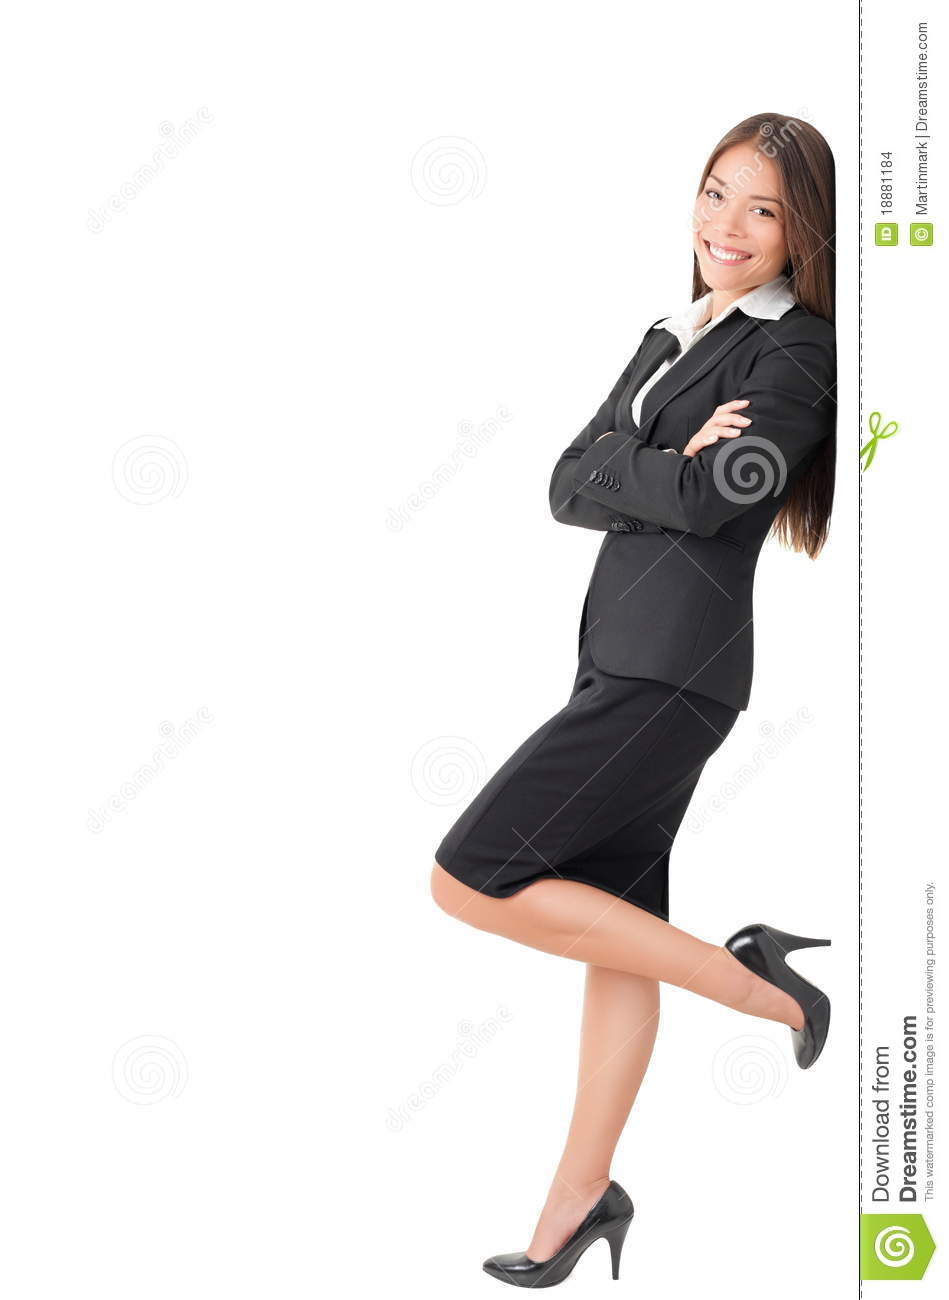 Girl Back Side Wallpaper Businesswoman Standing Leaning On Sign Stock Photo Image